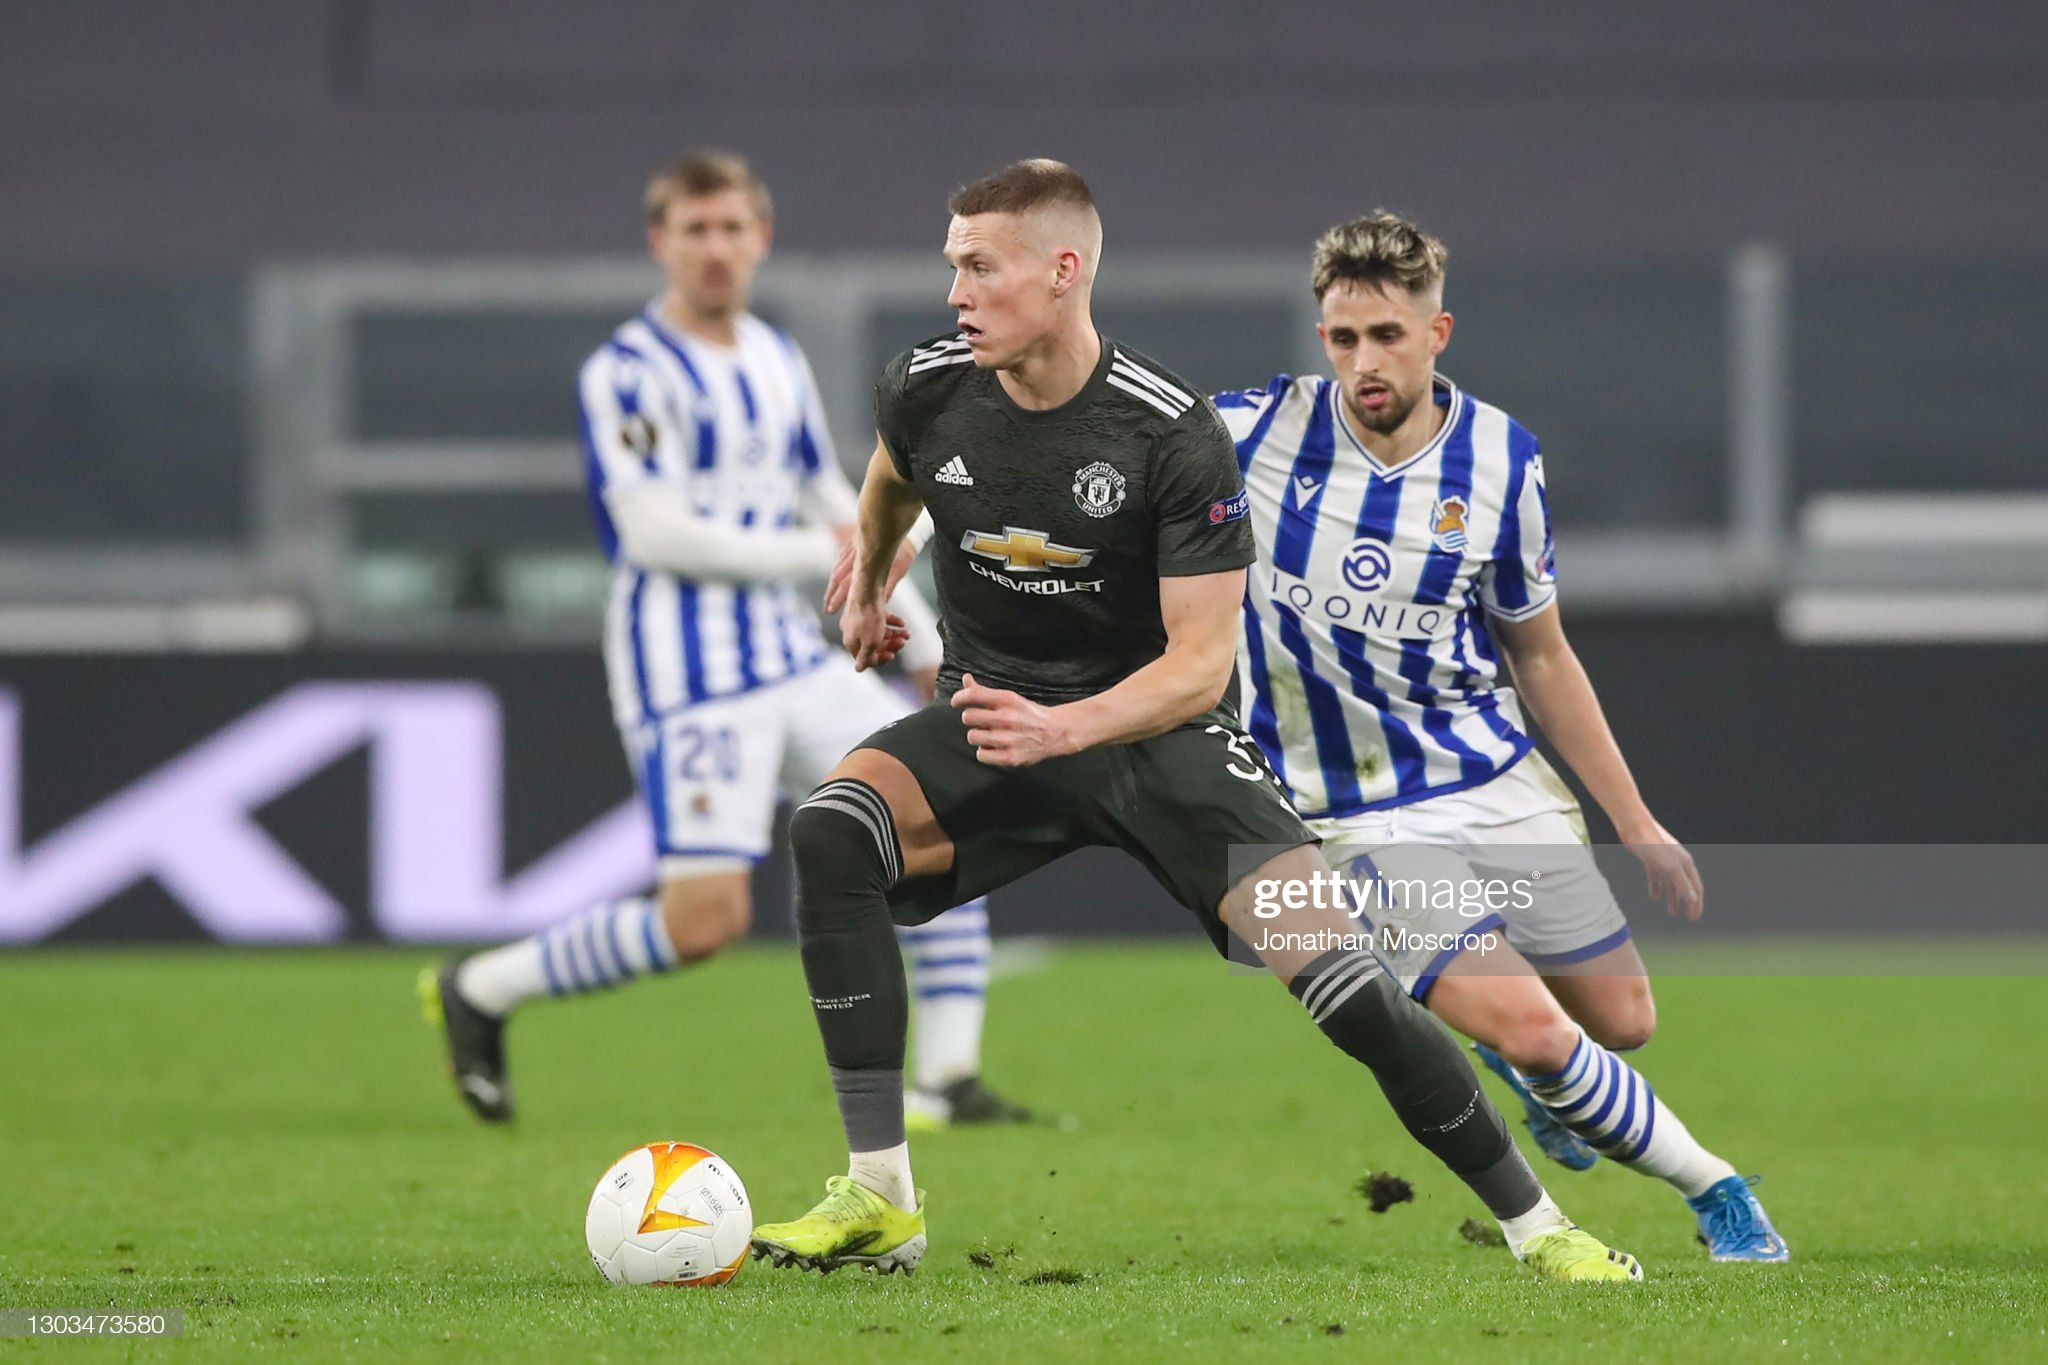 Manchester United vs Real Sociedad preview, prediction and odds